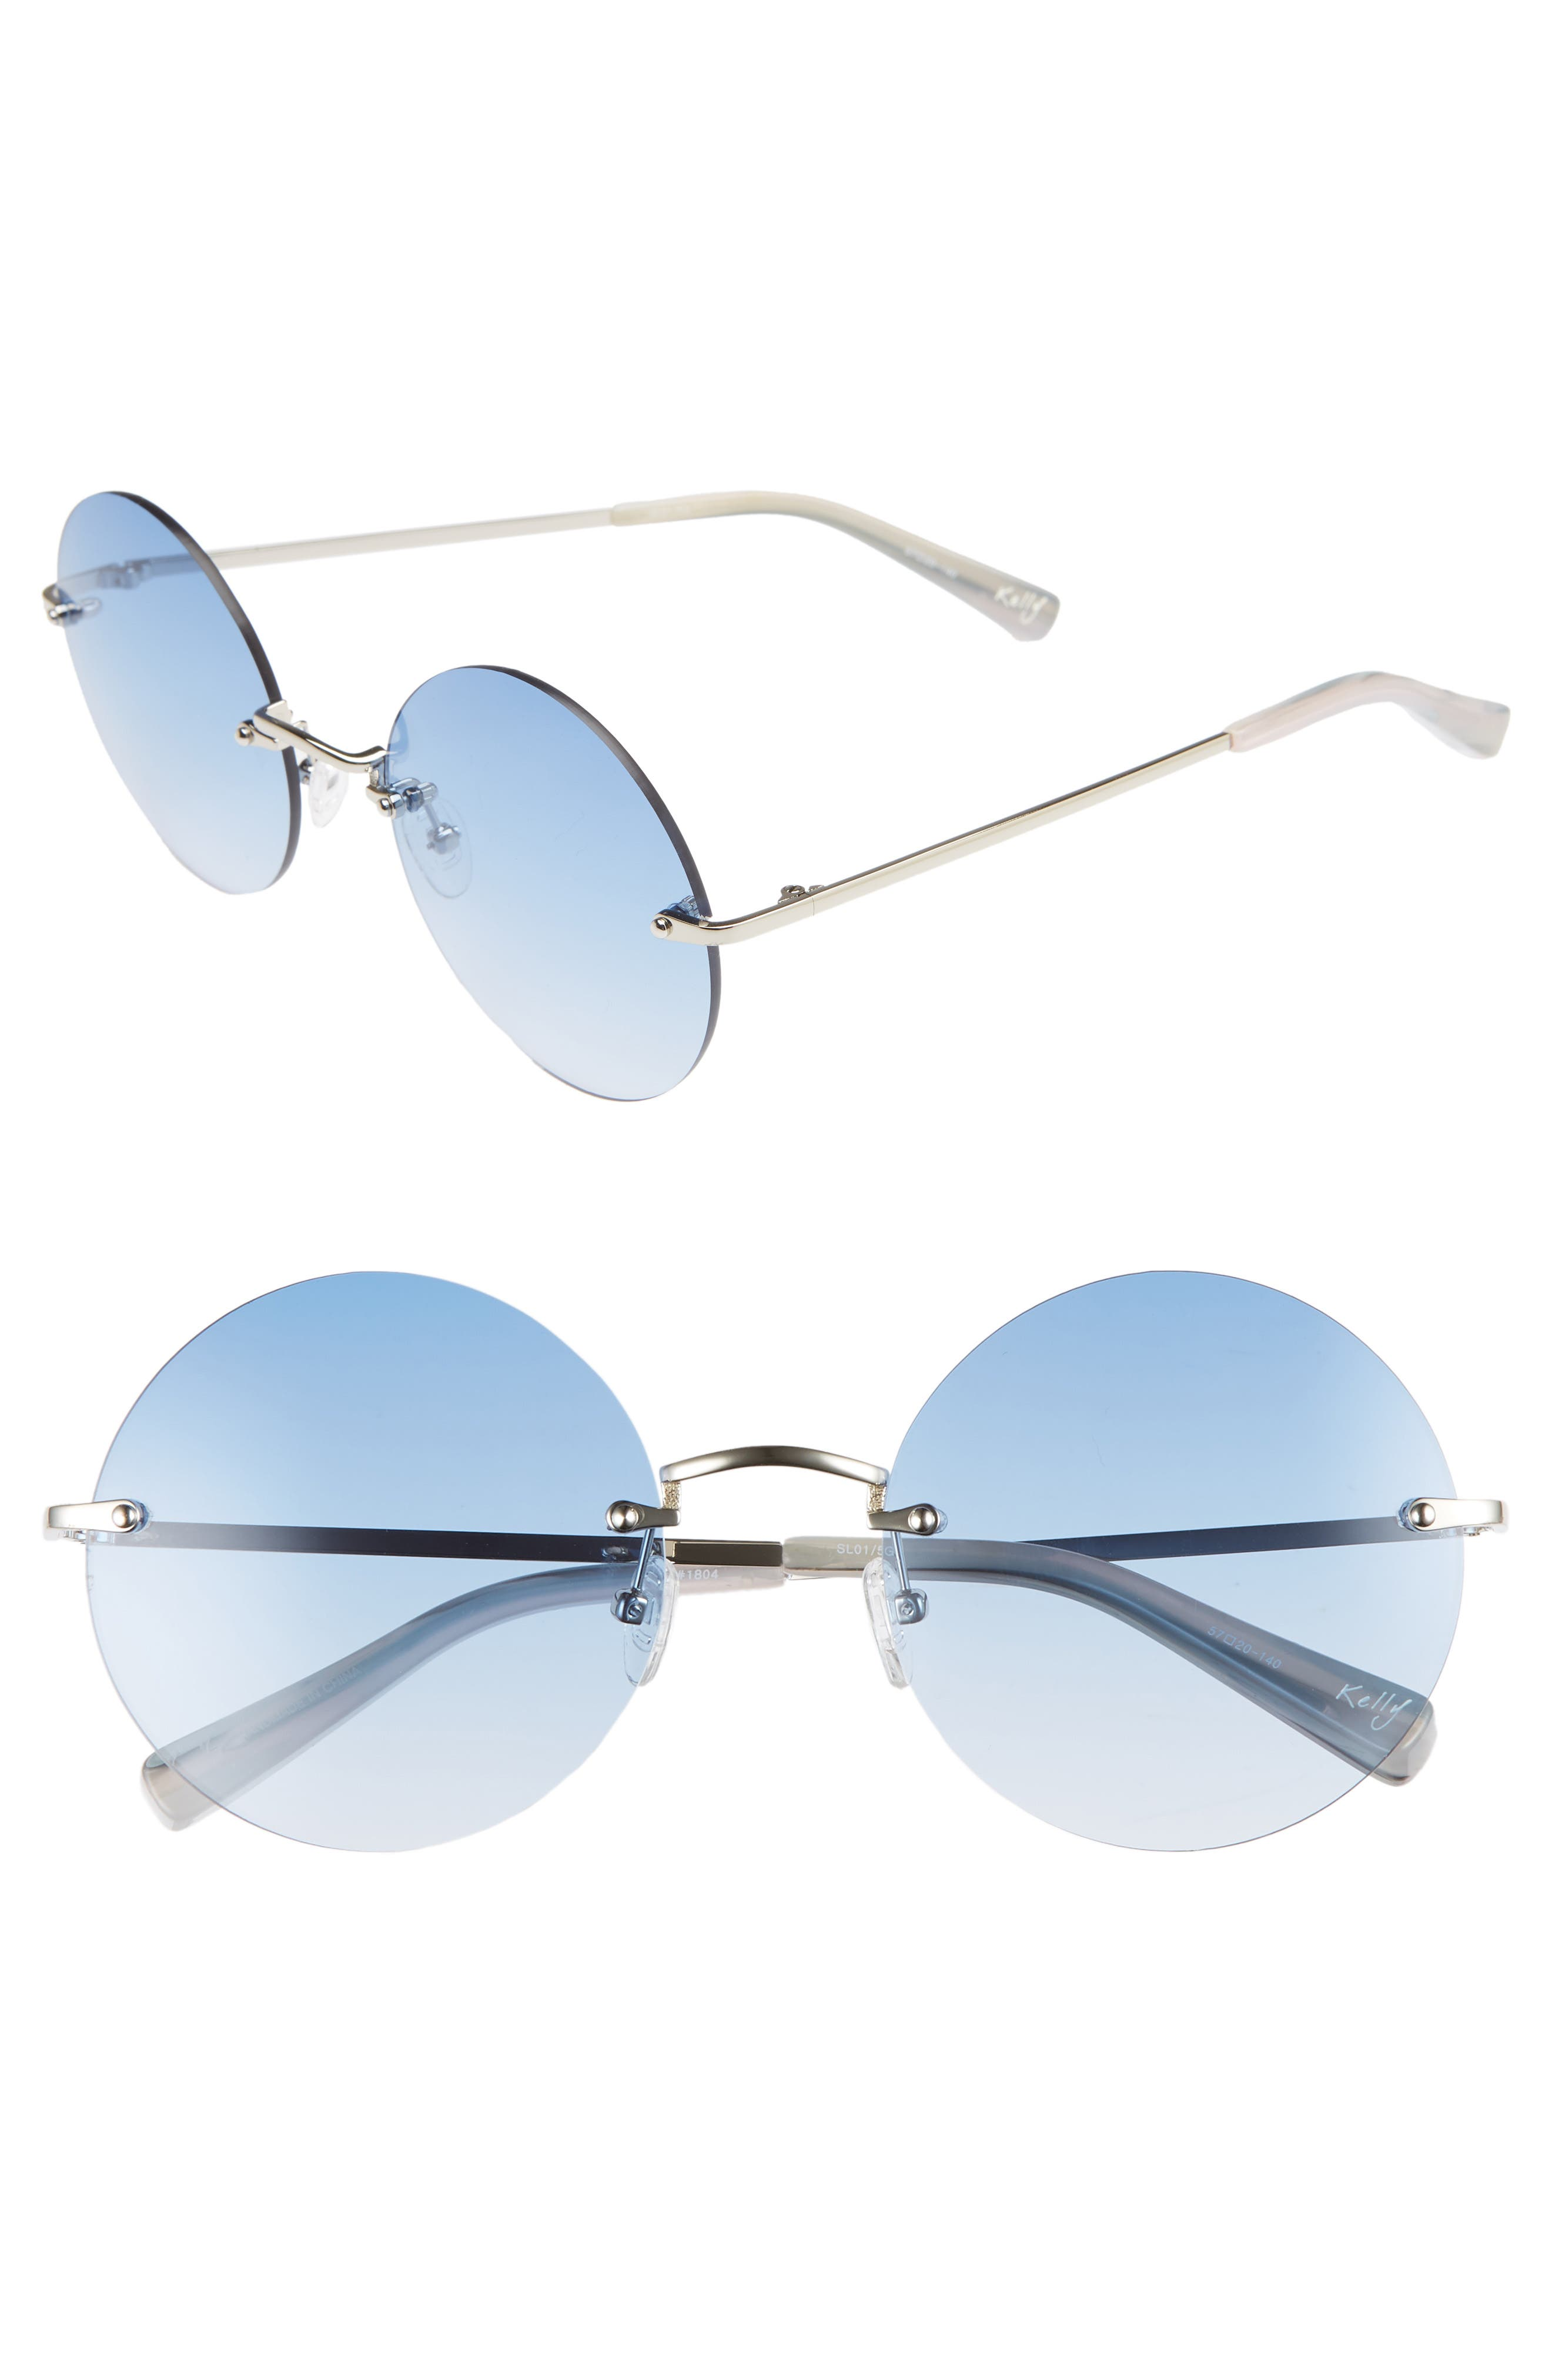 Kelly 57mm Rimless Round Sunglasses,                             Main thumbnail 1, color,                             SILVER/ BLUE